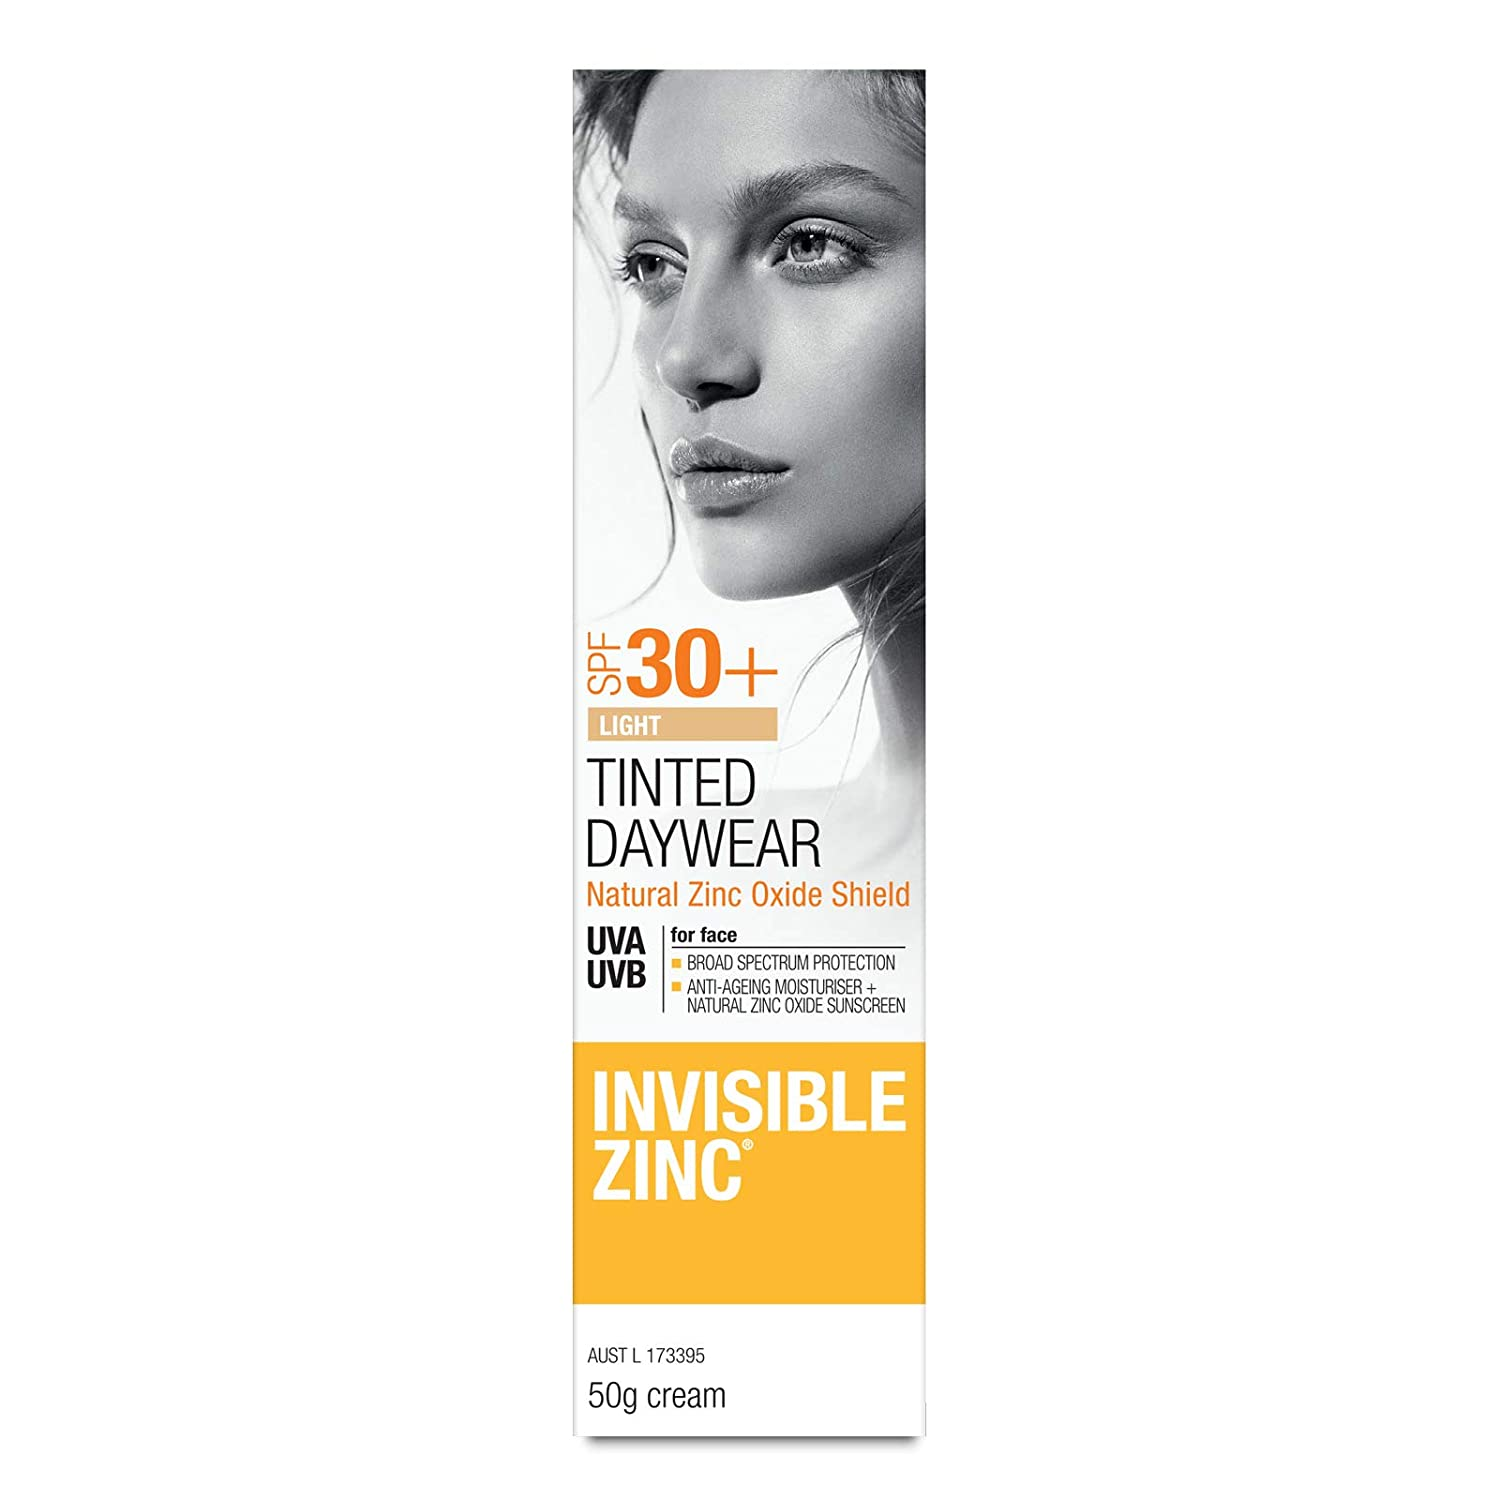 Invisible Zinc Light Tinted Daywear SPF 50+ - Daily Moisturizer With Sun Protection & Sheer Foundation To Nourish & Prevent Appearance Of Premature Aging Caused By Harmful UV Rays - 50g